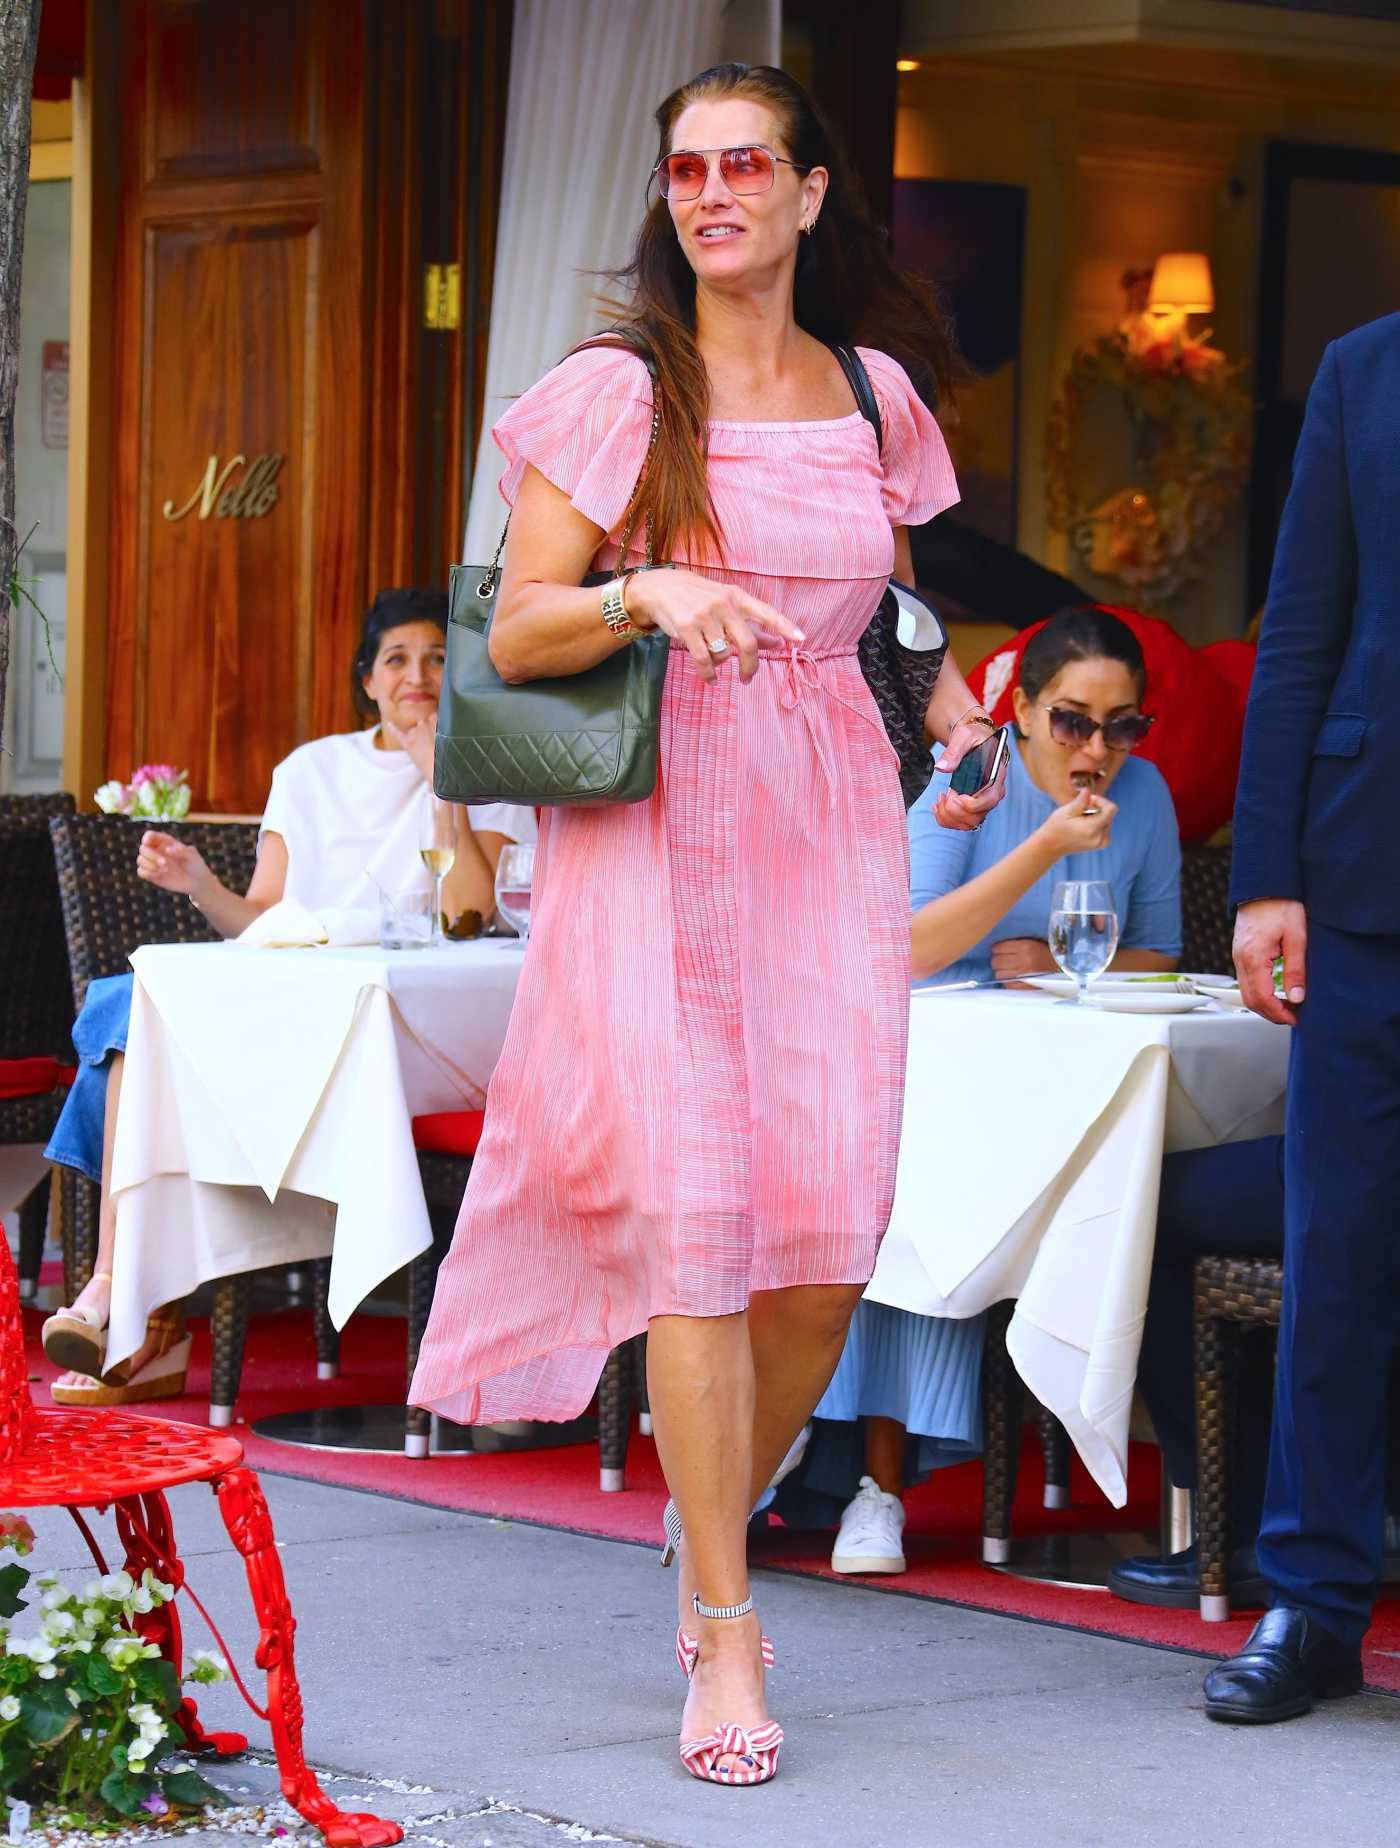 Brooke Shields in a Pink Dress Arrives at Nello Restaurant in New York City 05/24/2019